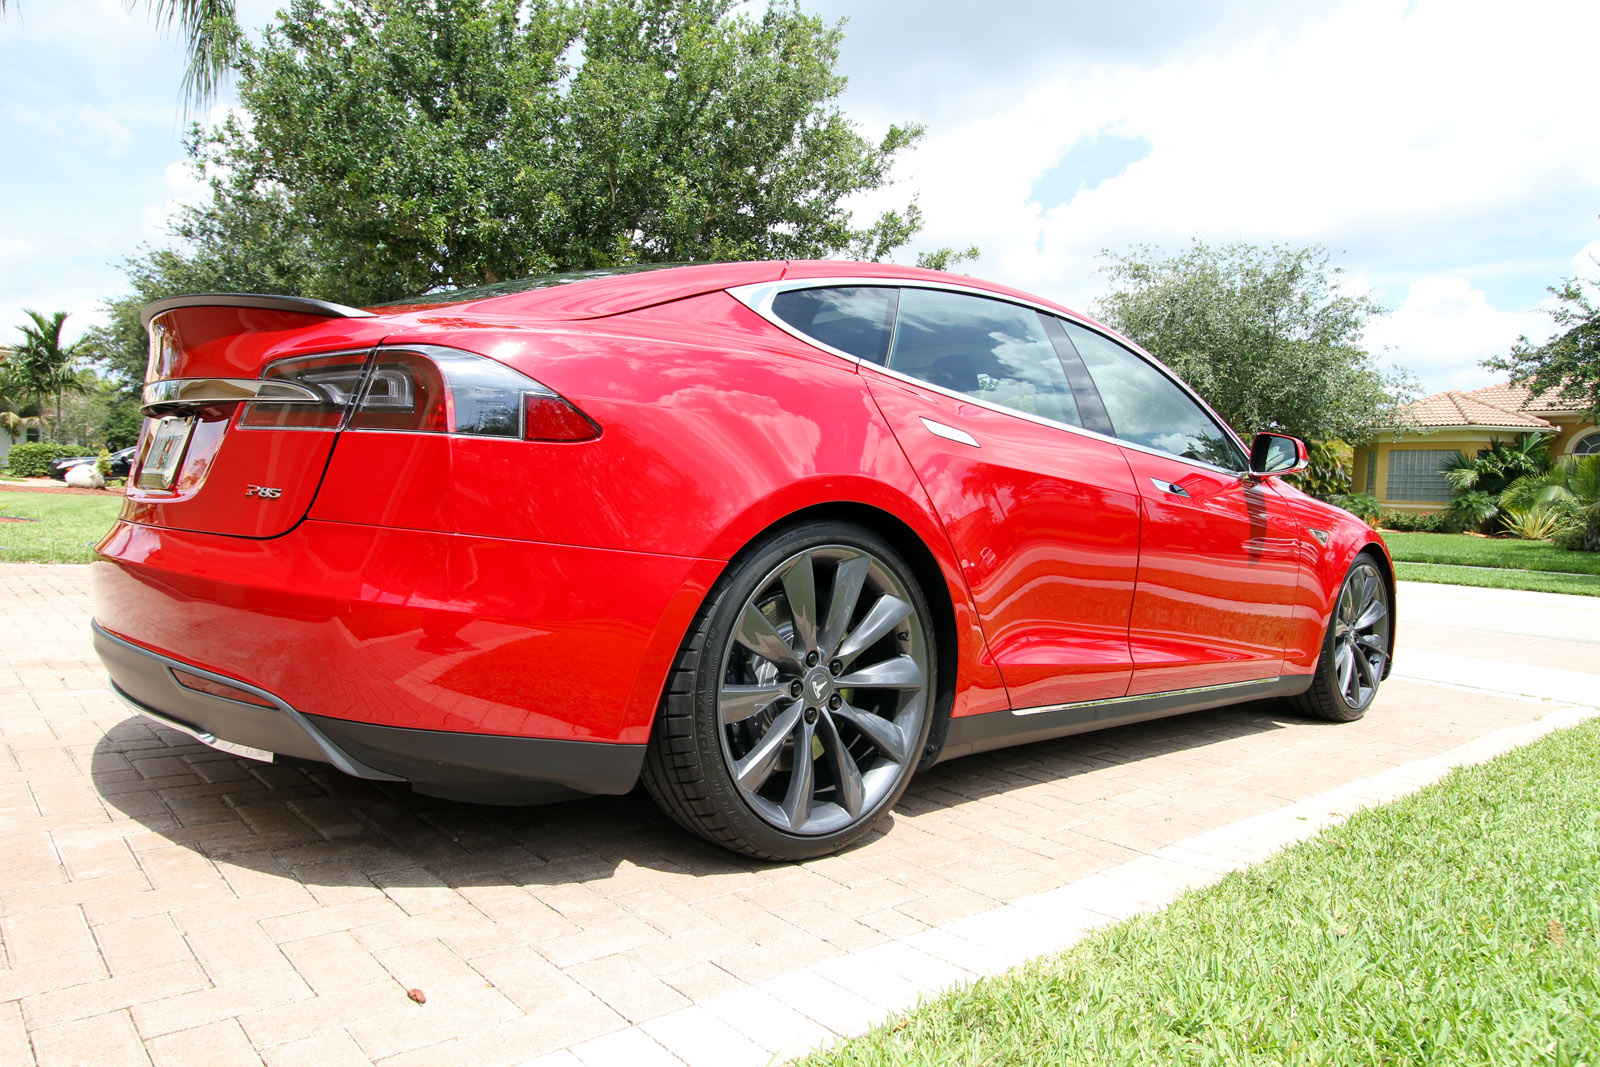 Tesla Model S Drag Racing Energy Usage And Cost